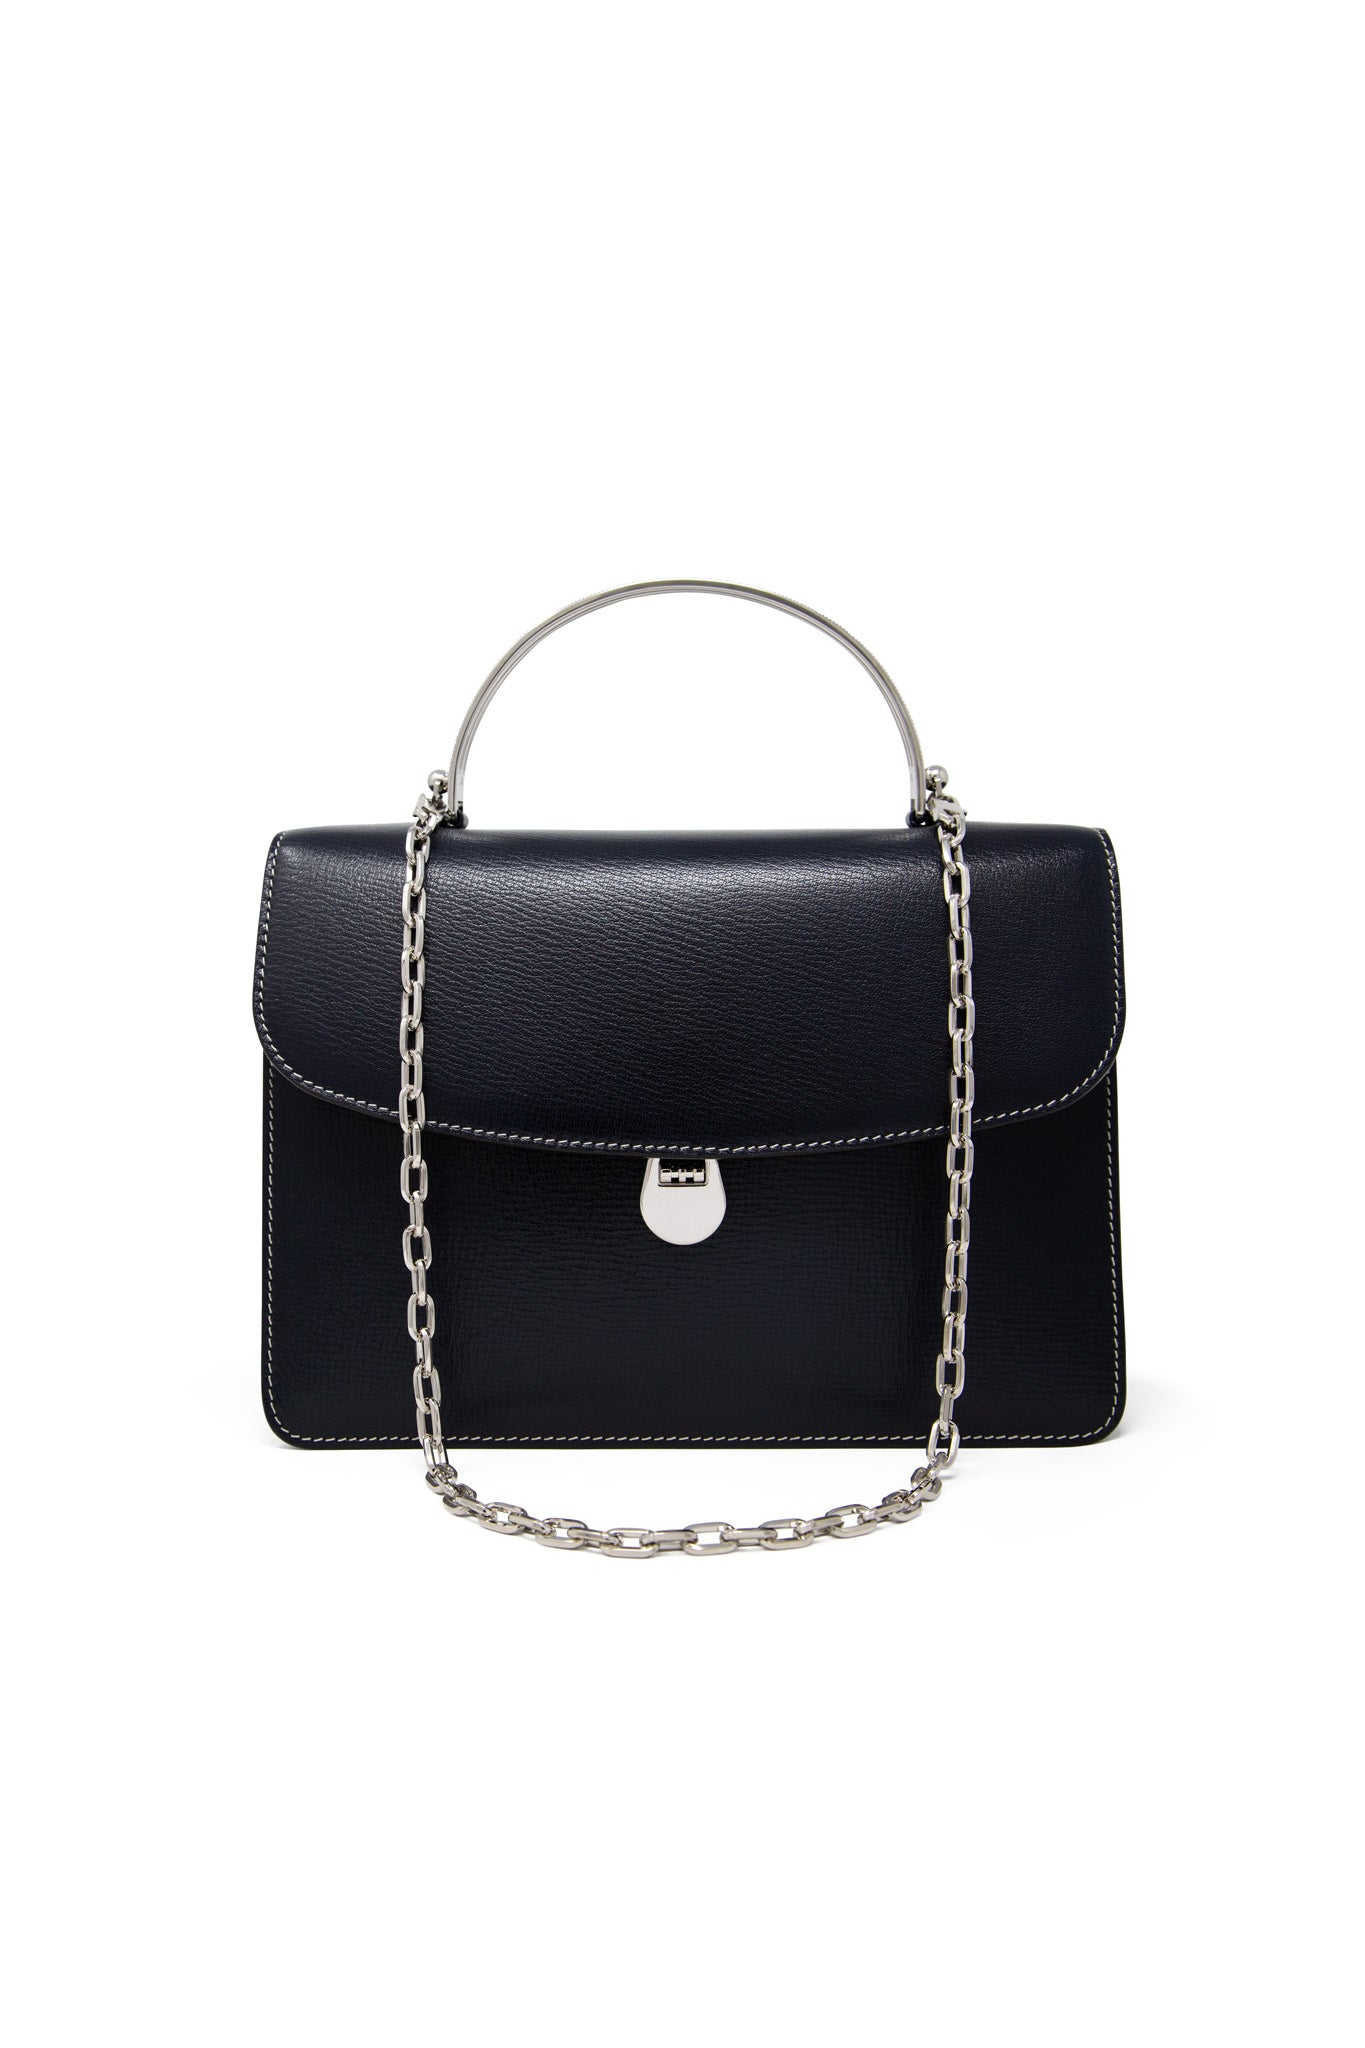 Charlie Top Handle Bag in Navy Leather